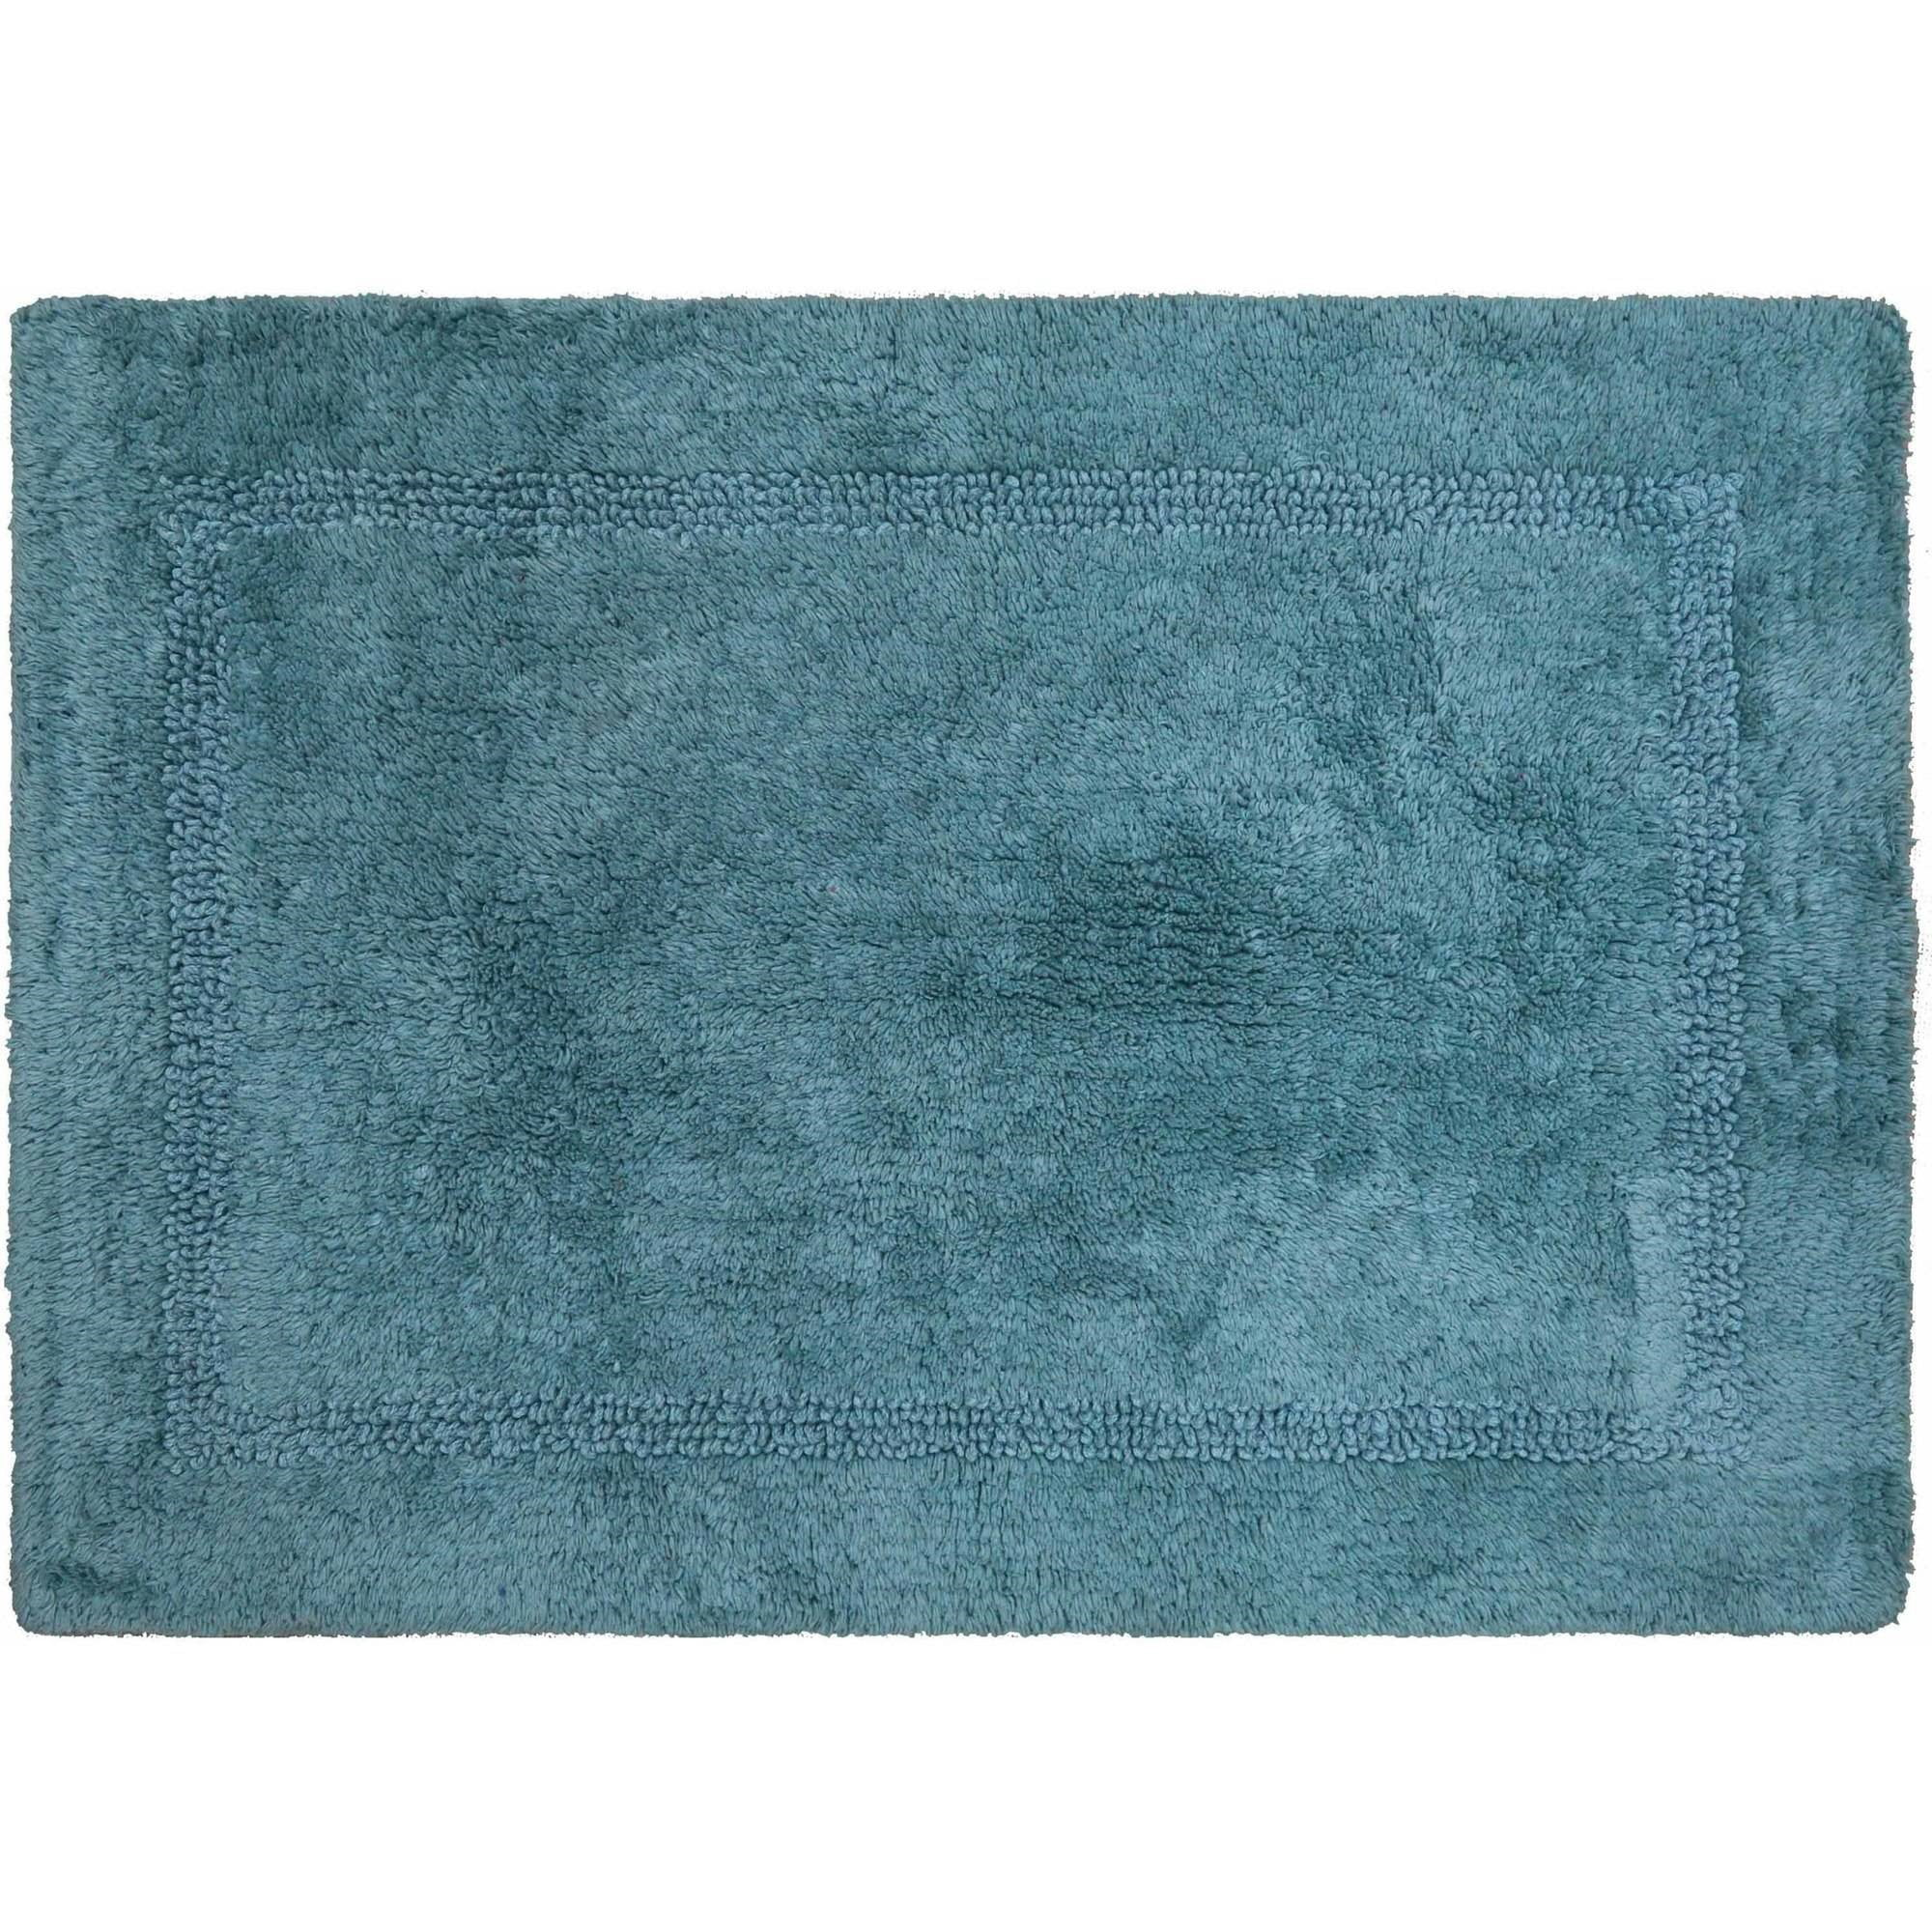 Fabulous Better Homes Gardens Cotton Reversible Bath Mat Gmtry Best Dining Table And Chair Ideas Images Gmtryco